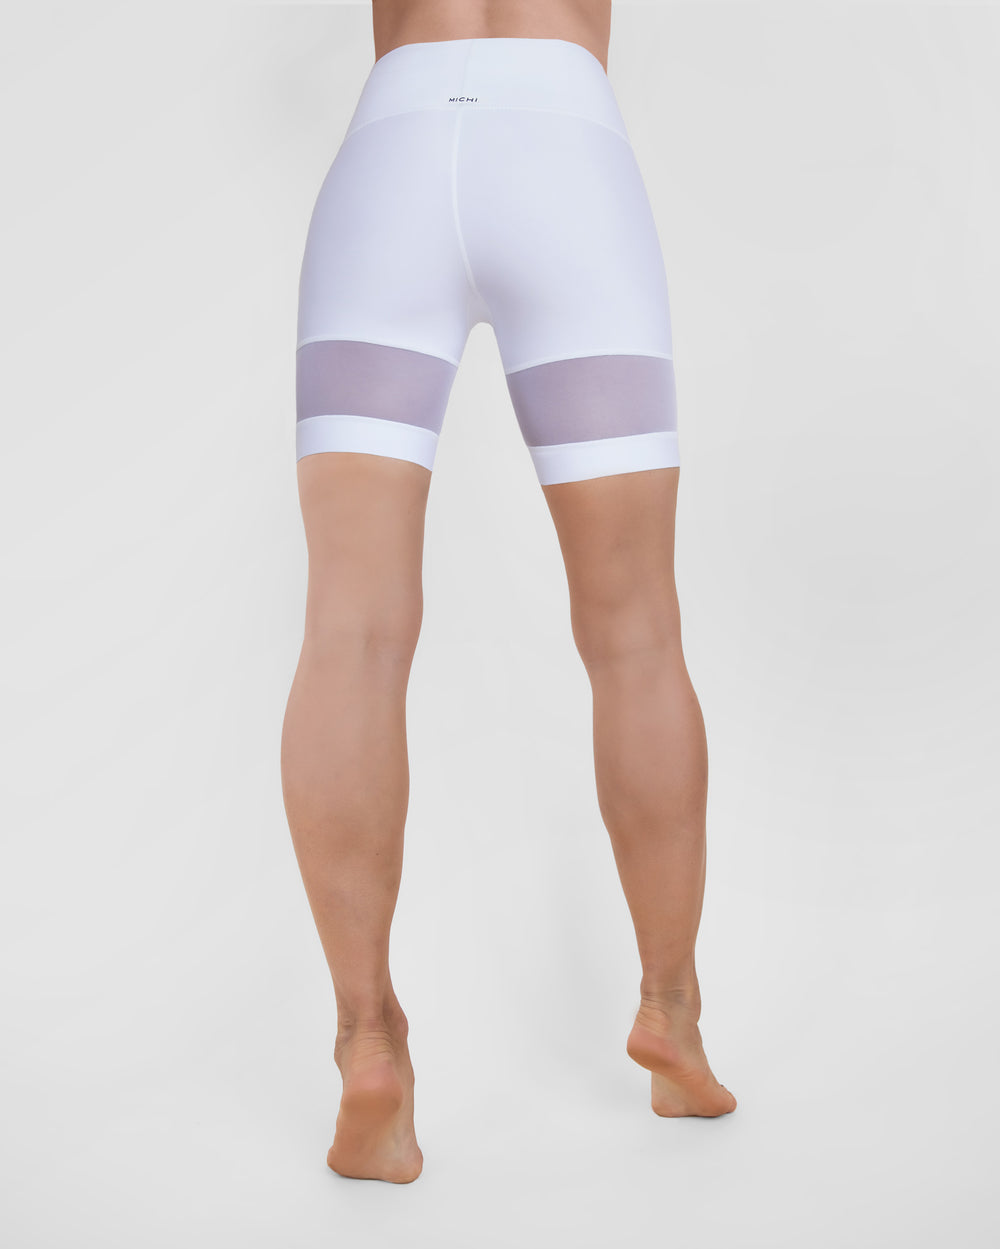 Kinetic Bike Short - White